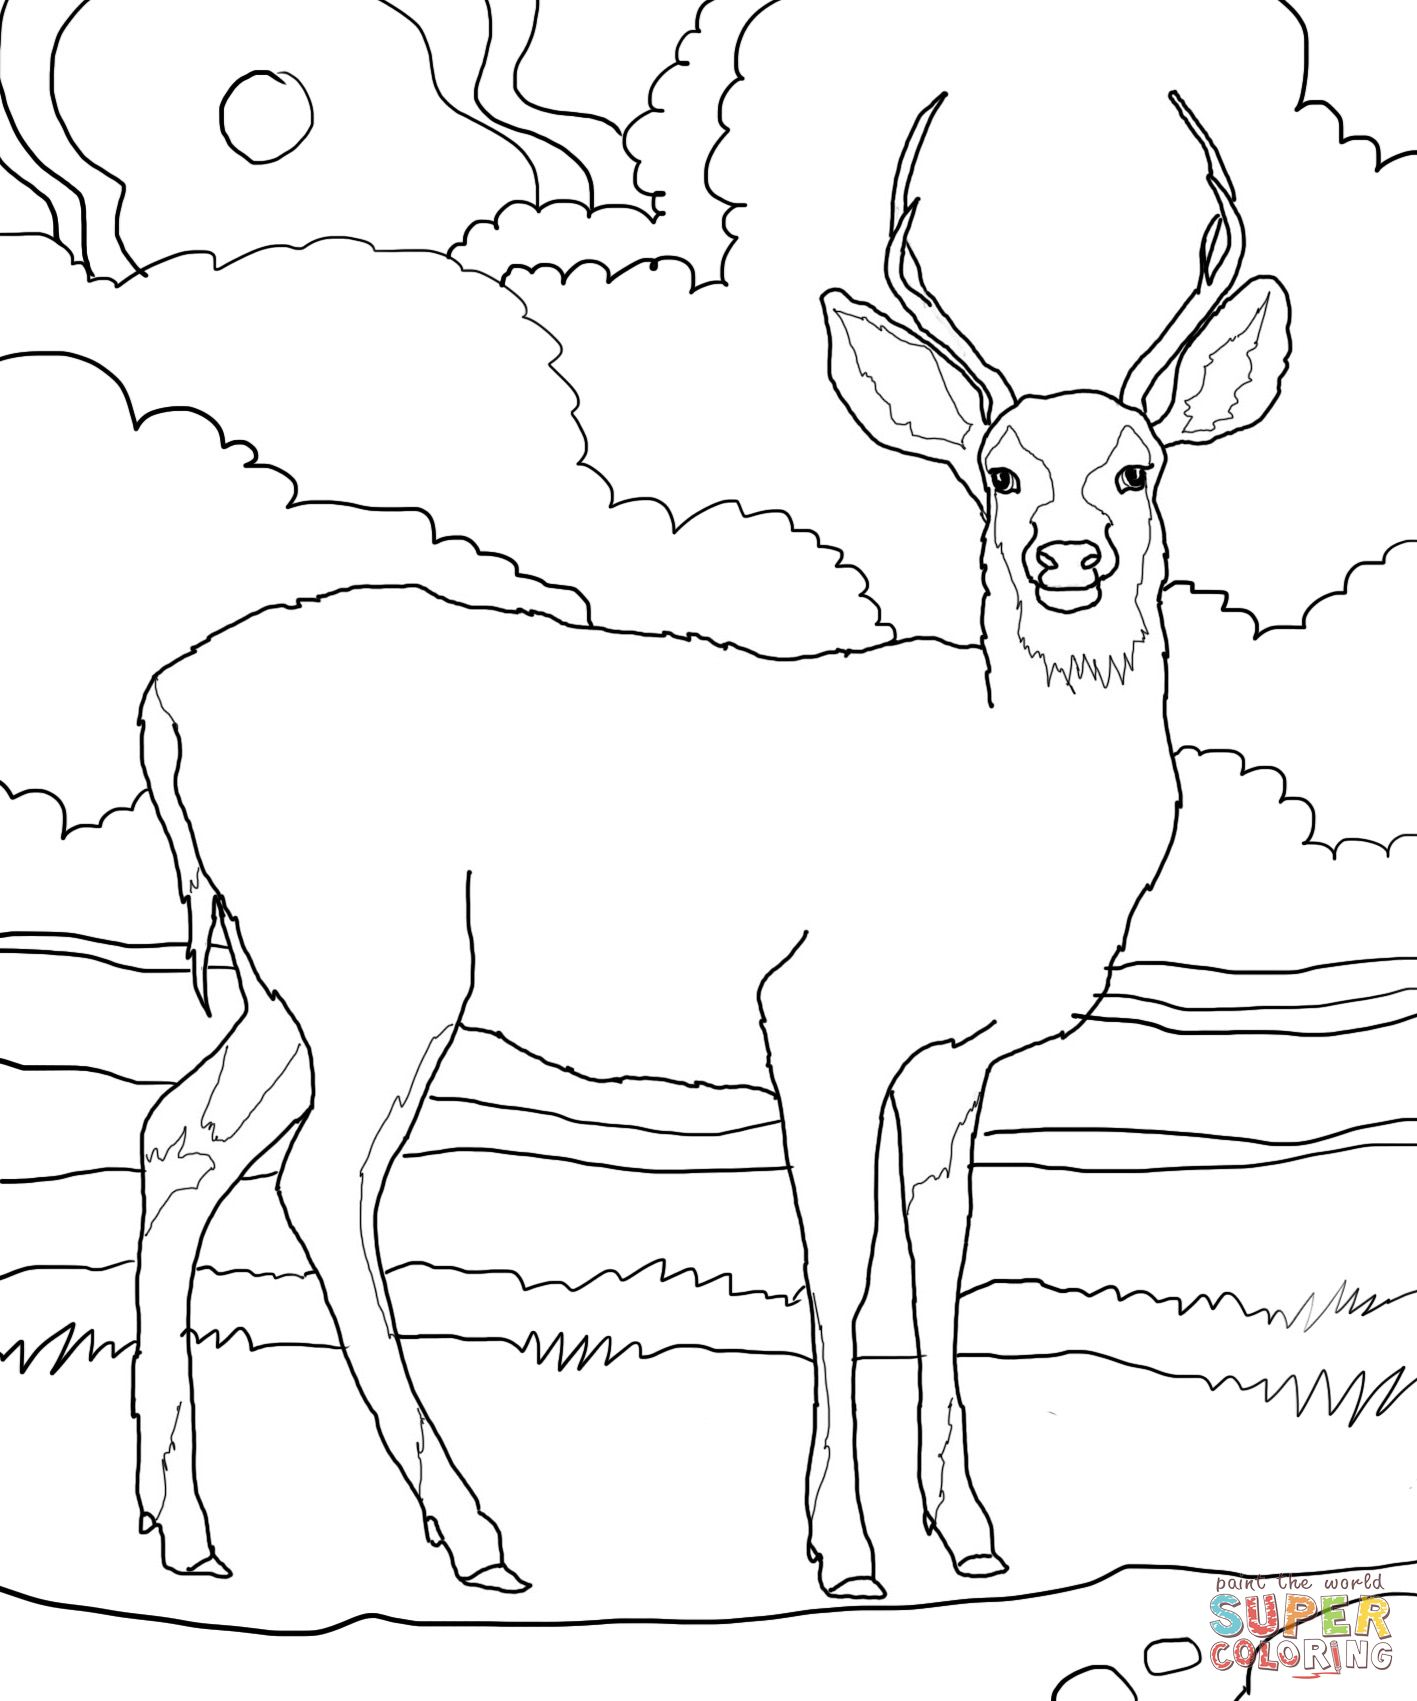 Mule Deer Coloring Page Supercoloring Com Deer Coloring Pages